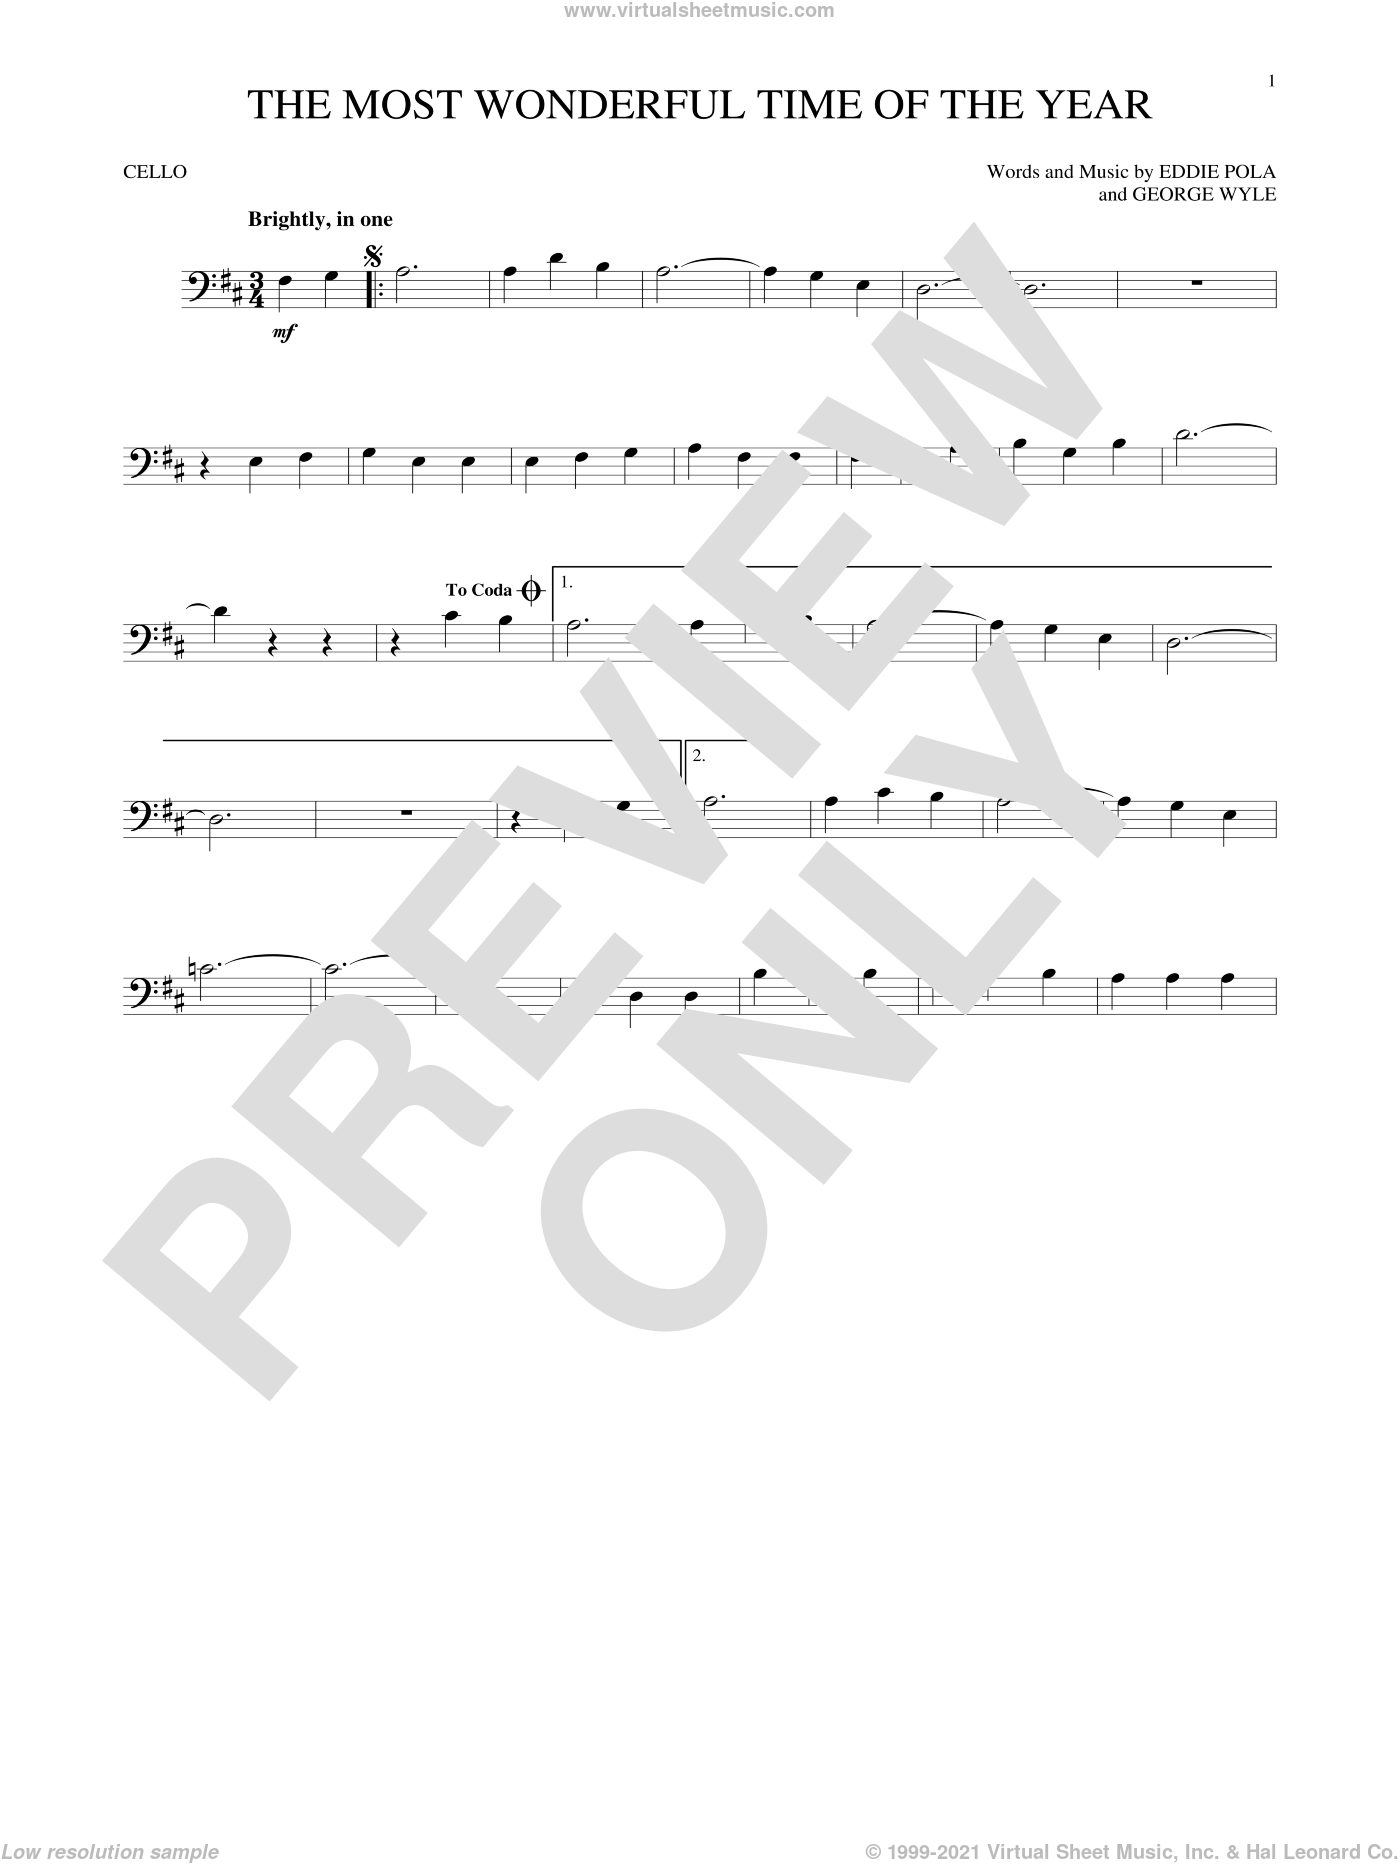 The Most Wonderful Time Of The Year sheet music for cello solo by George Wyle, Andy Williams and Eddie Pola. Score Image Preview.